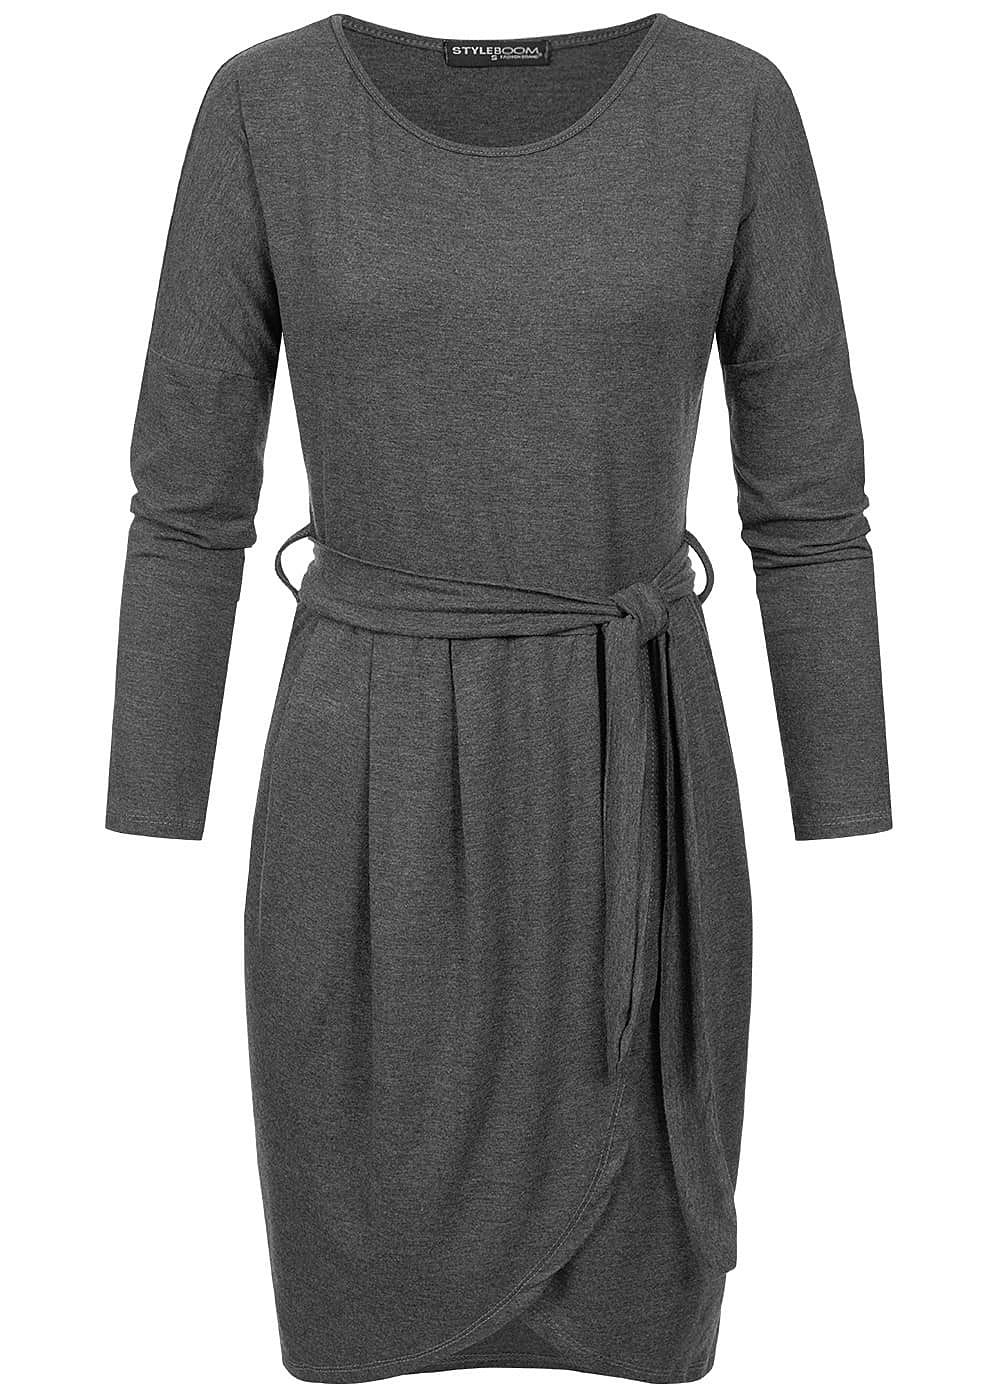 Styleboom Fashion Damen Longsleeve Dress Belt dunkel grau - Art.-Nr.: 19026162-XS-DG